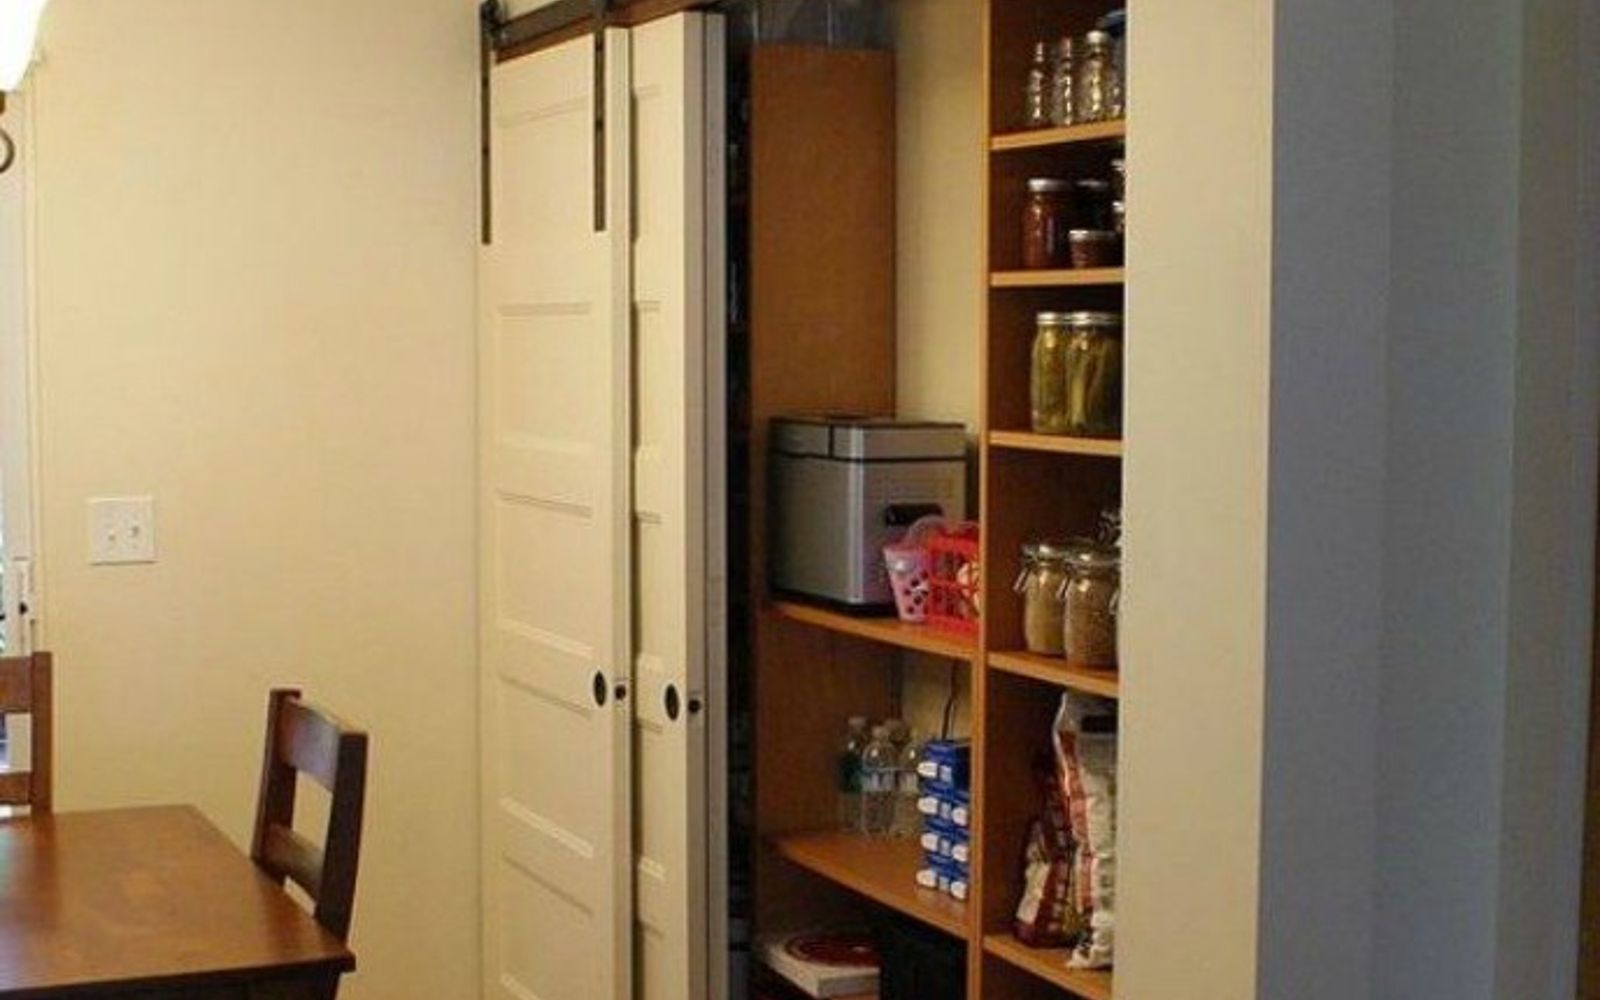 s add more pantry space with these brilliant hacks, closet, Install sliding doors to limit swing space